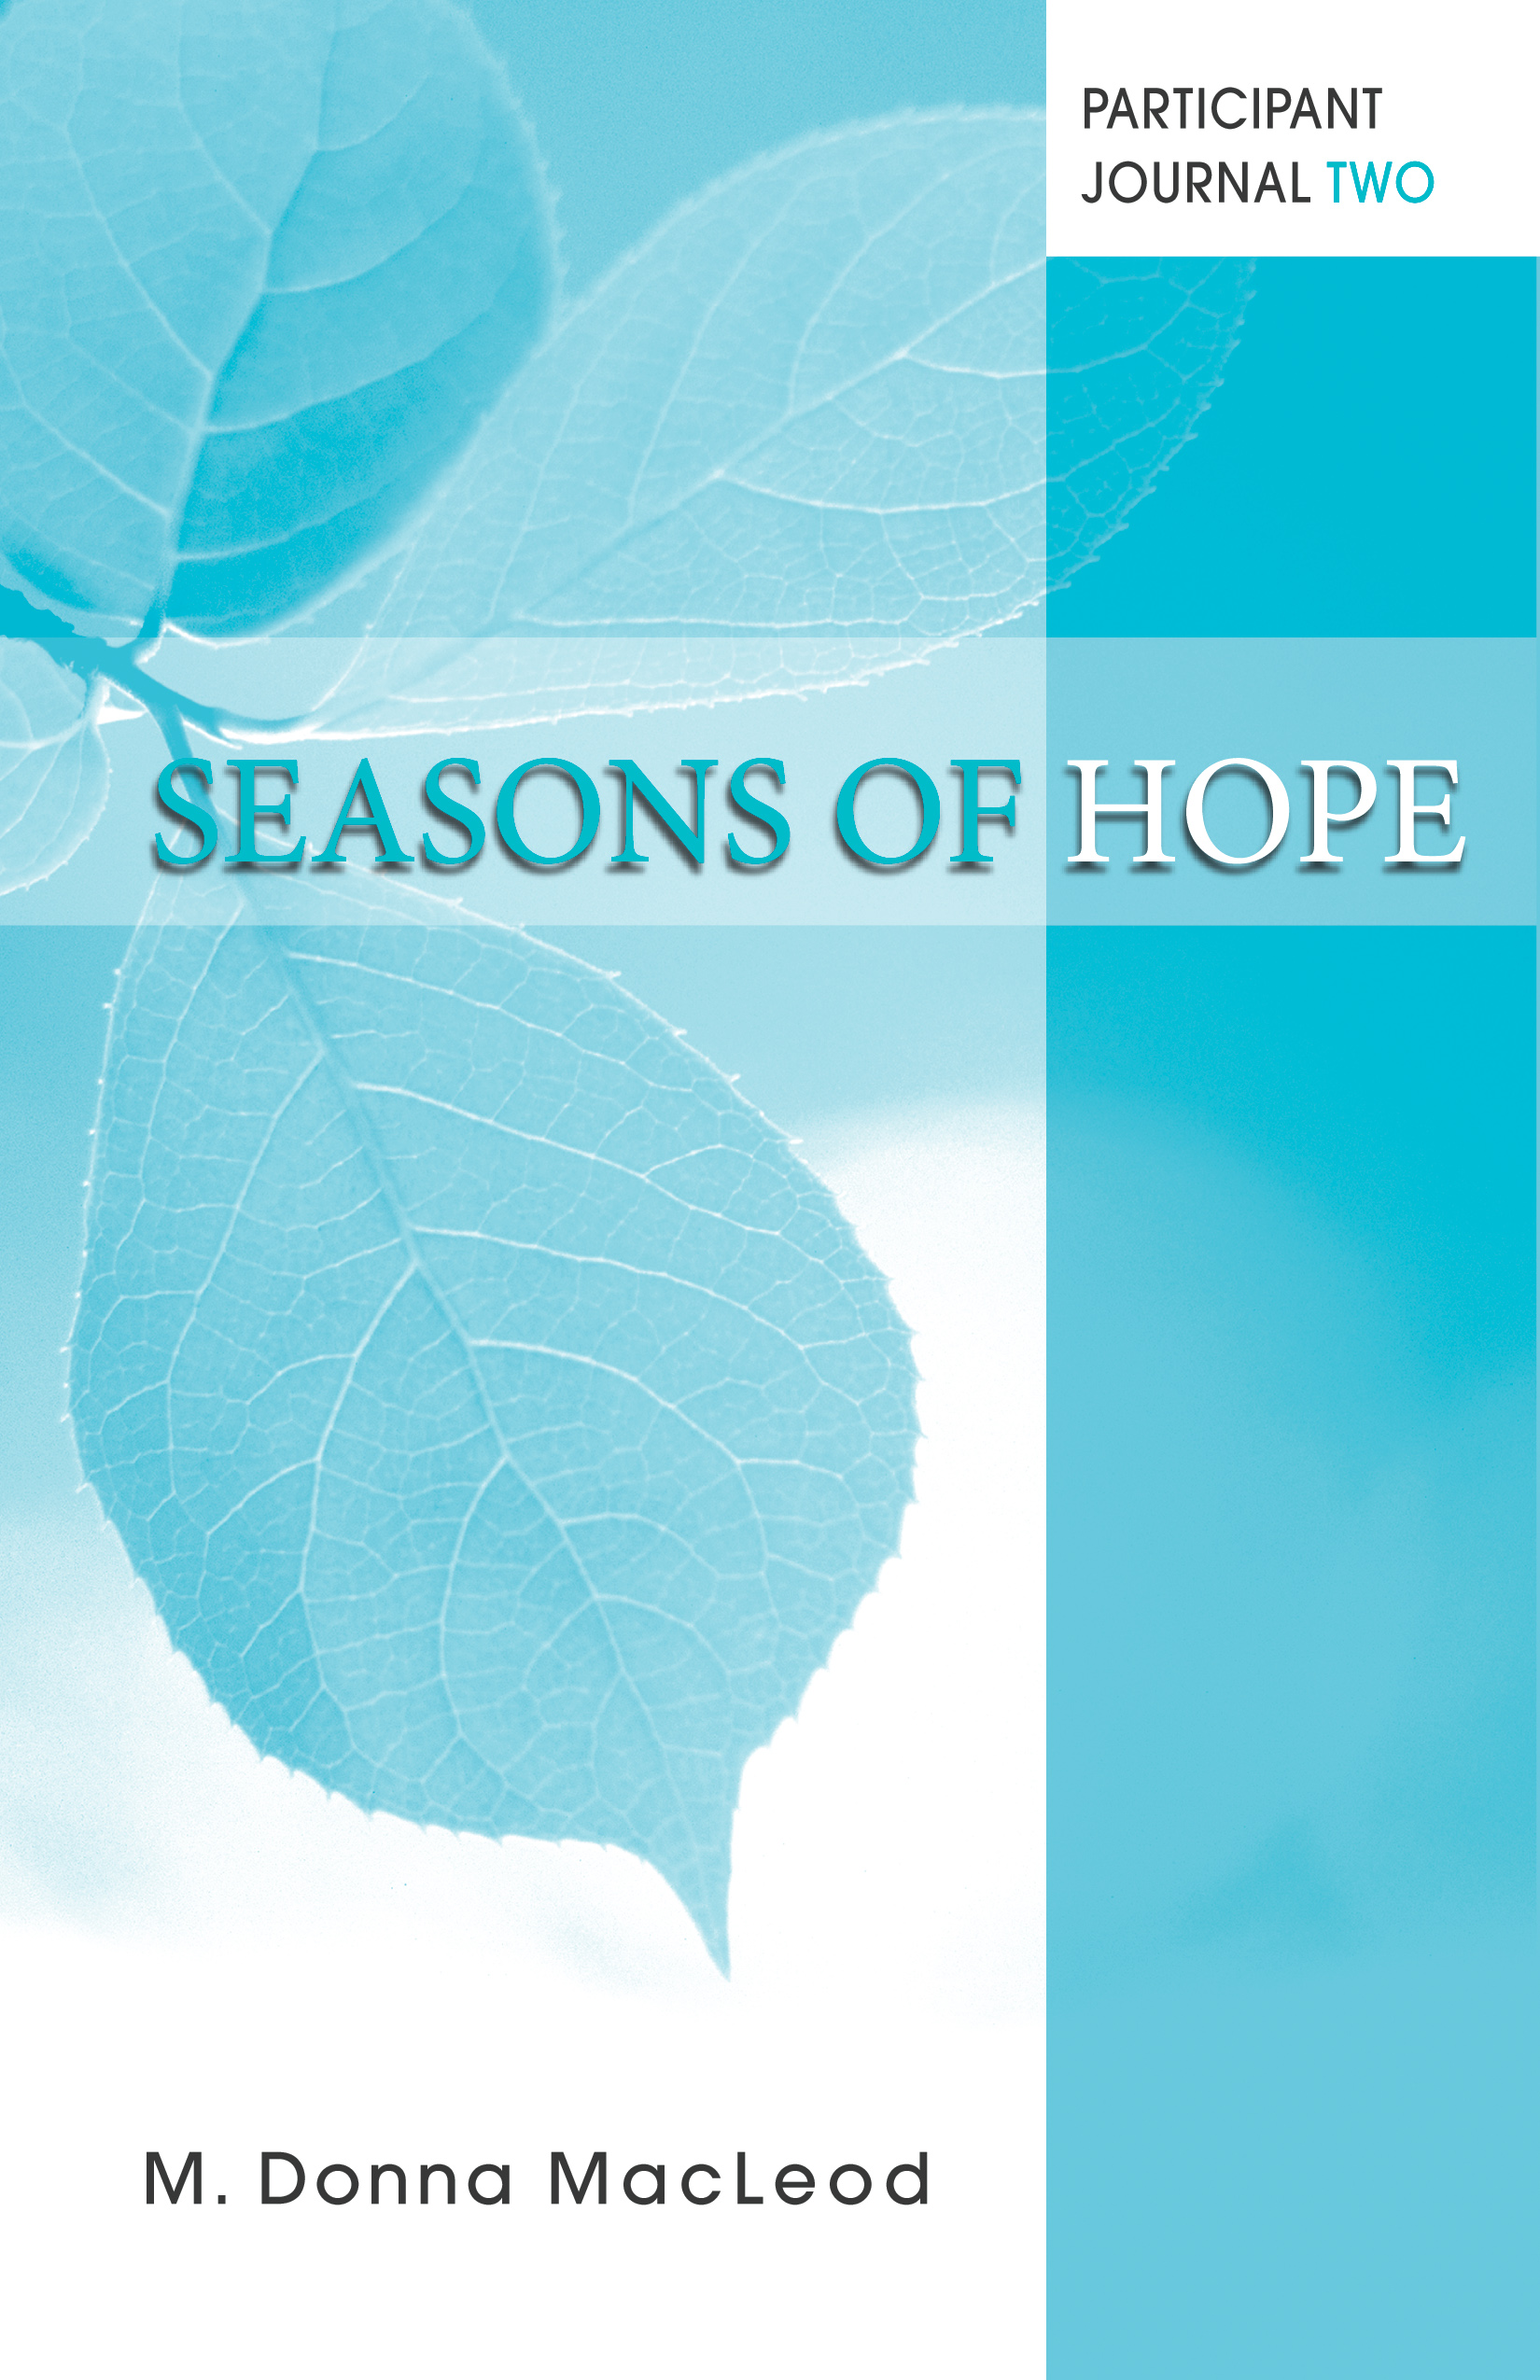 Seasons of Hope Participant Journal 2